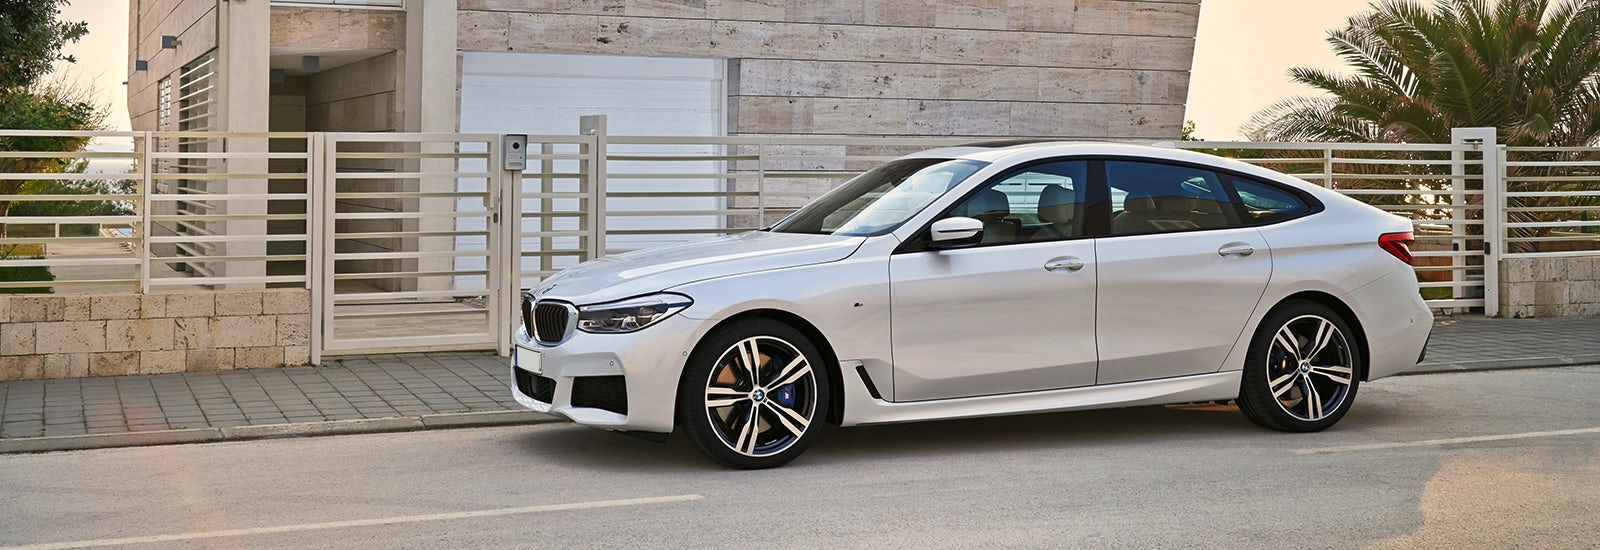 2018 bmw 6 series gt price specs and release date carwow. Black Bedroom Furniture Sets. Home Design Ideas